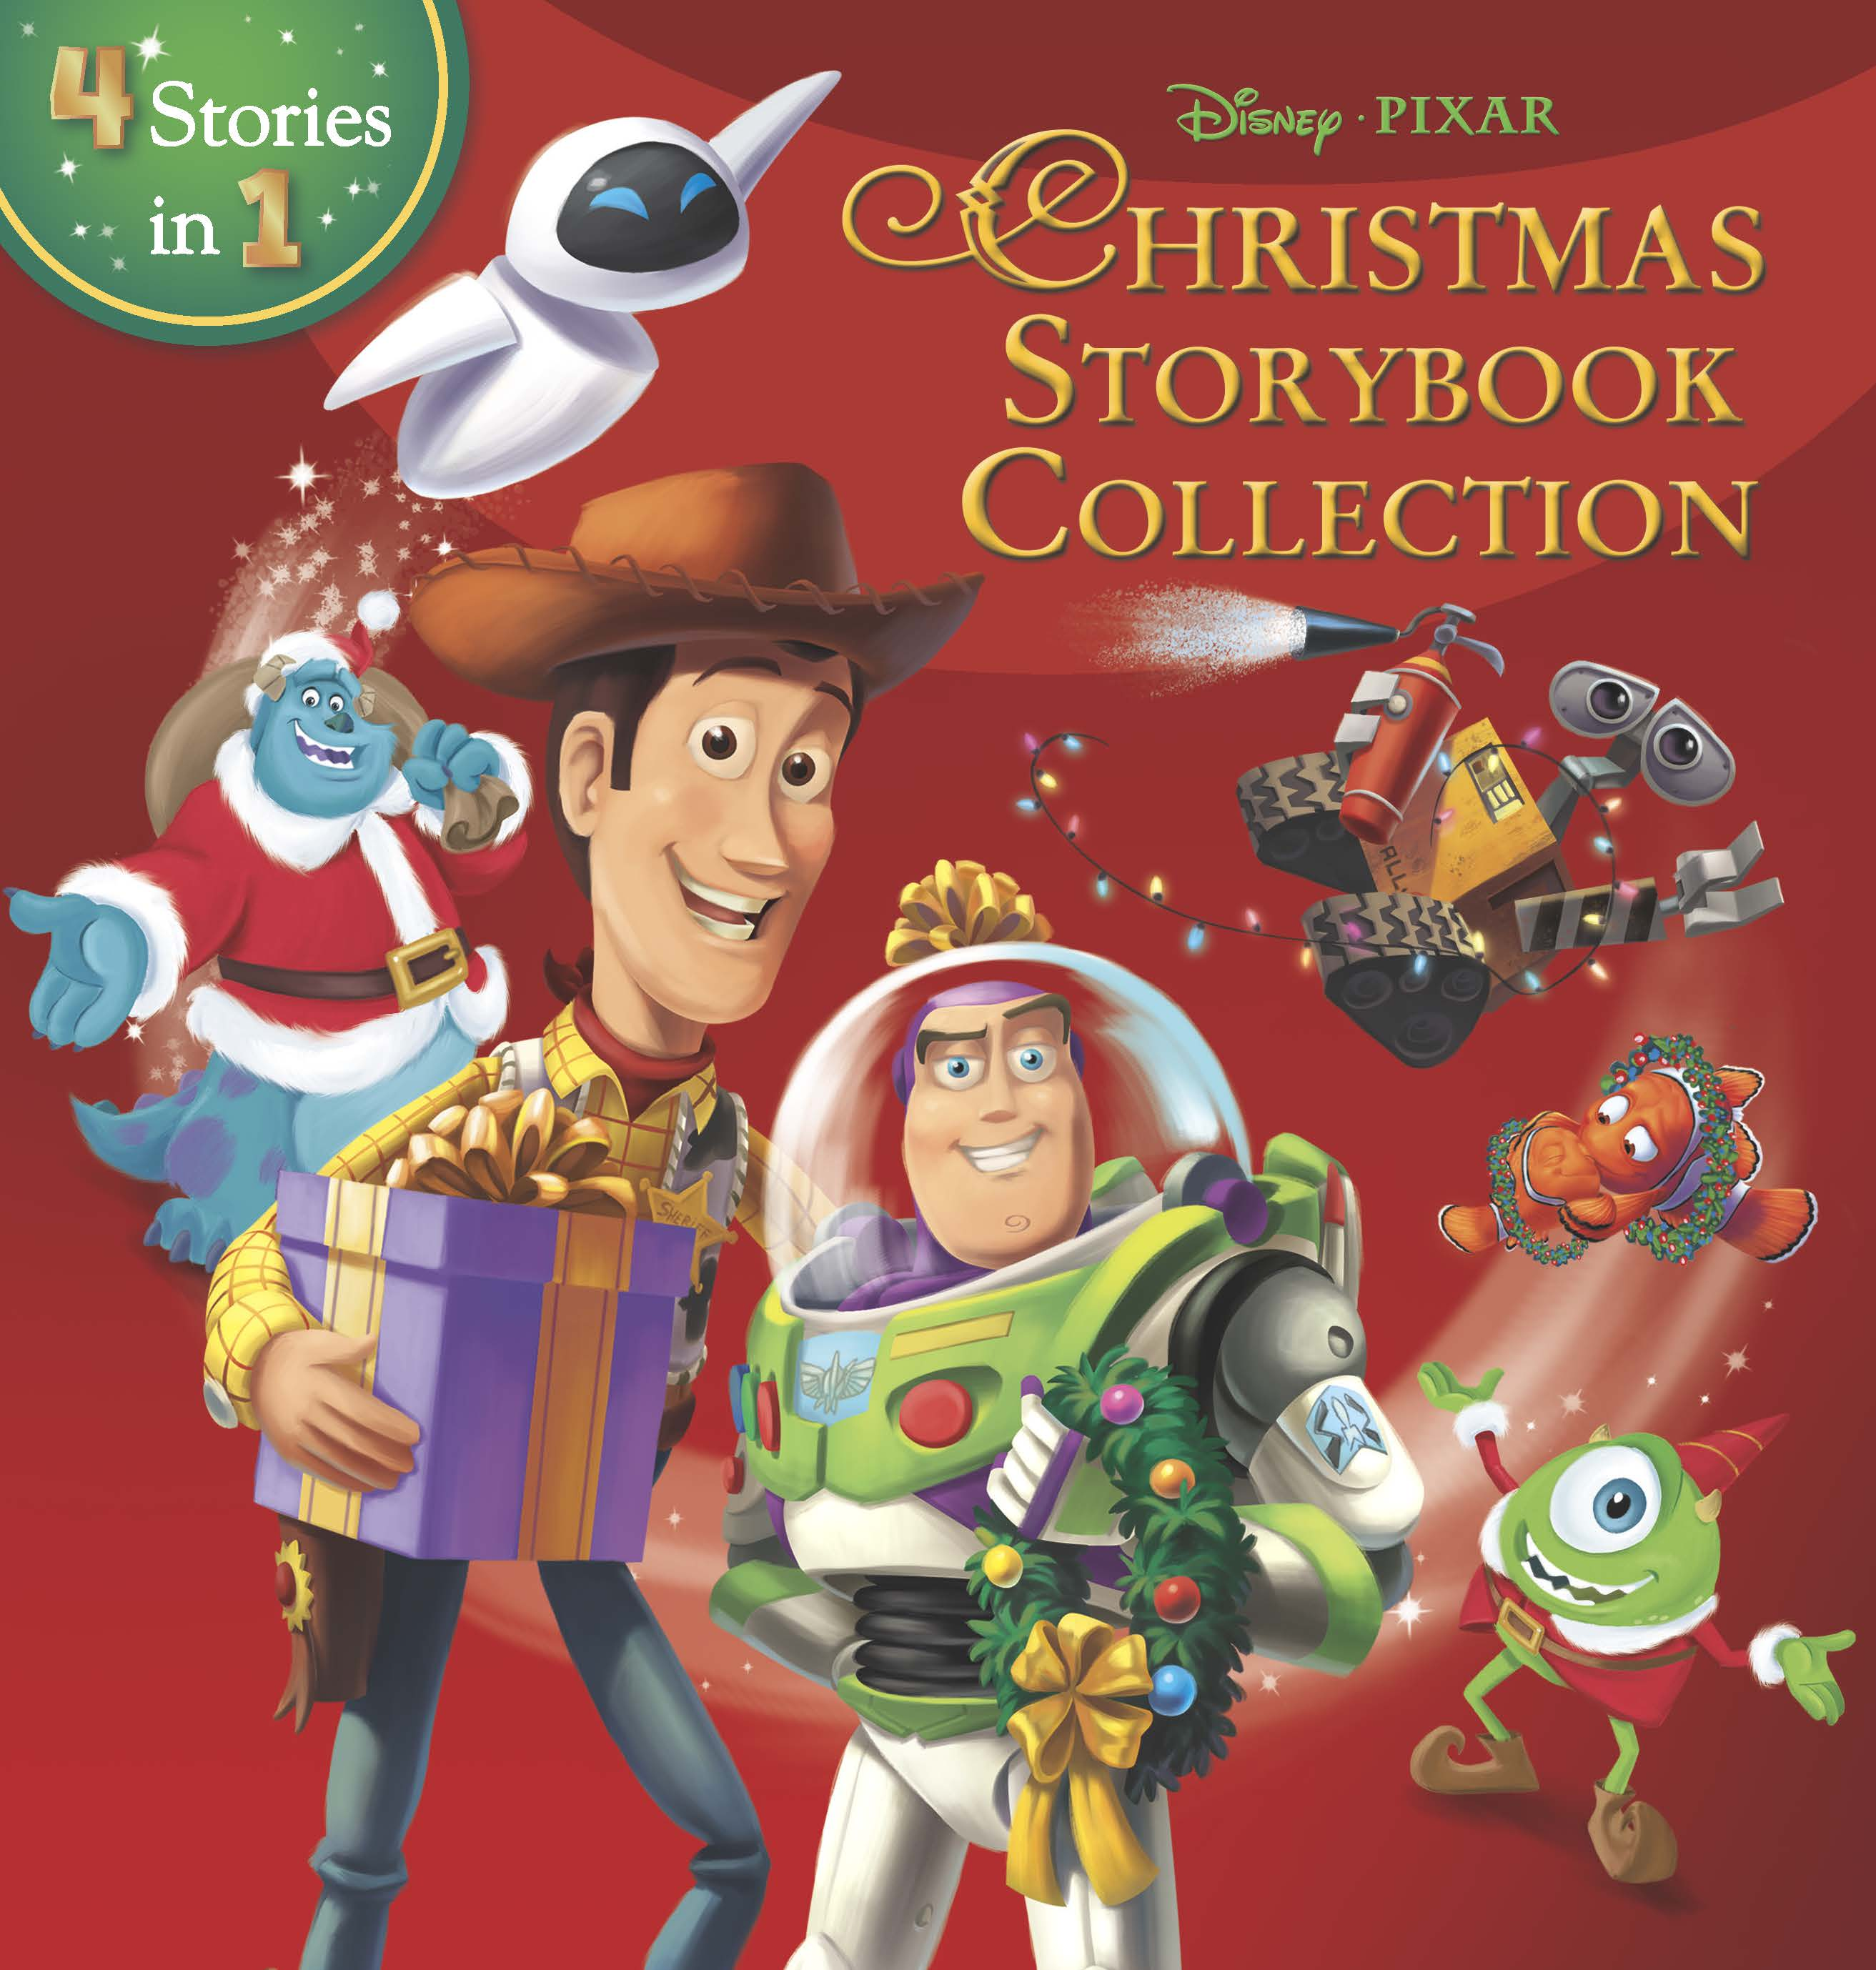 Disney Christmas Storybook Collection Christmas Books letsbookmypg.com